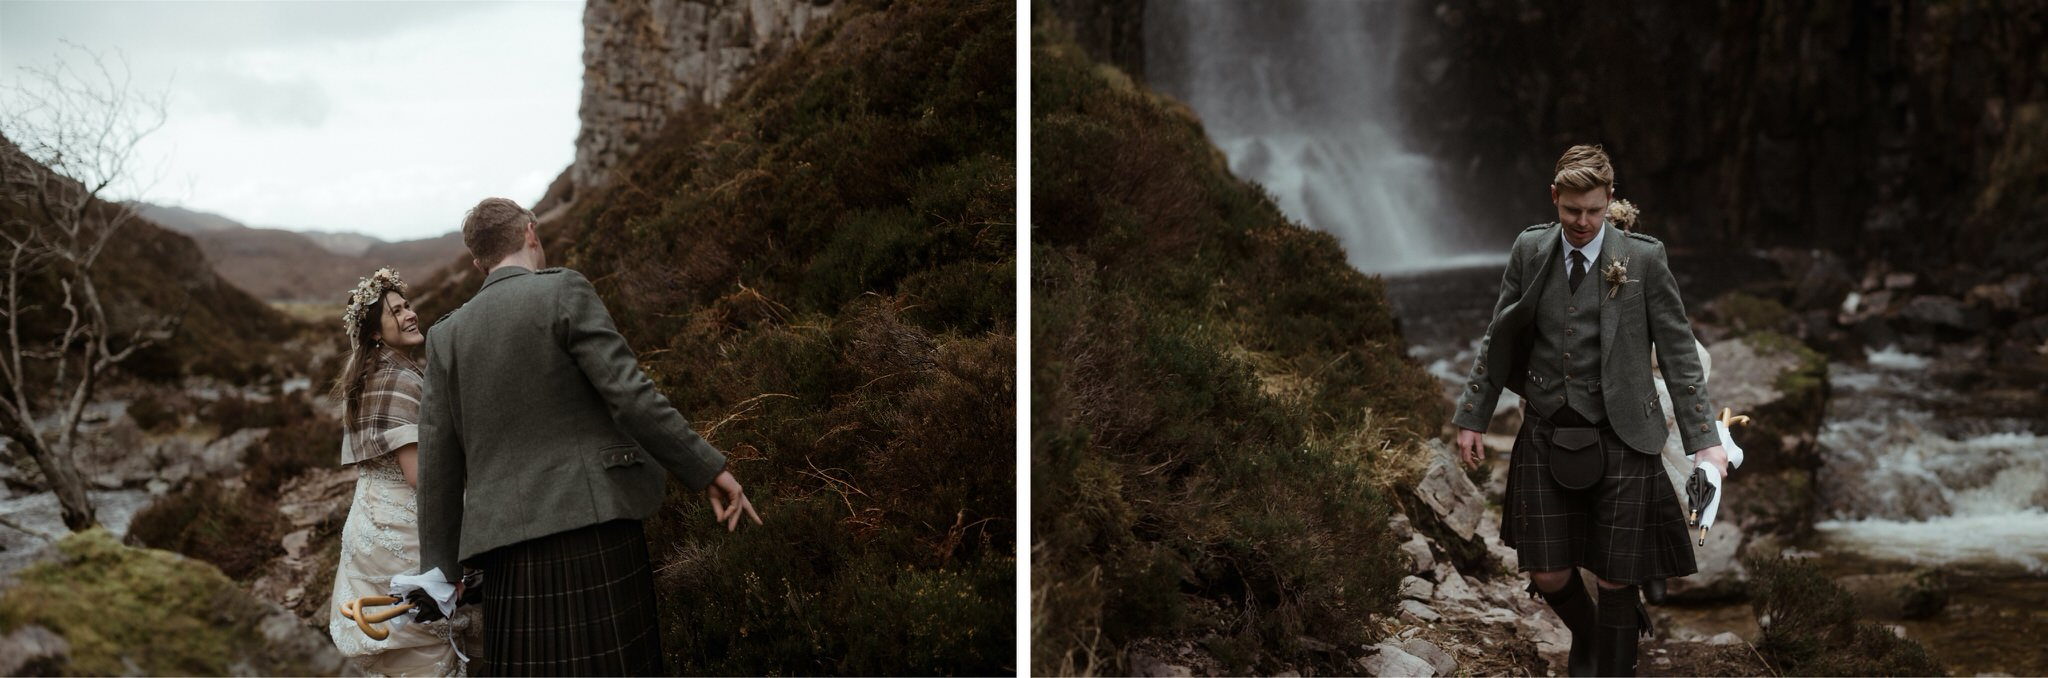 Groom walking through a gorge in Assynt after an elopement wedding in Scotland